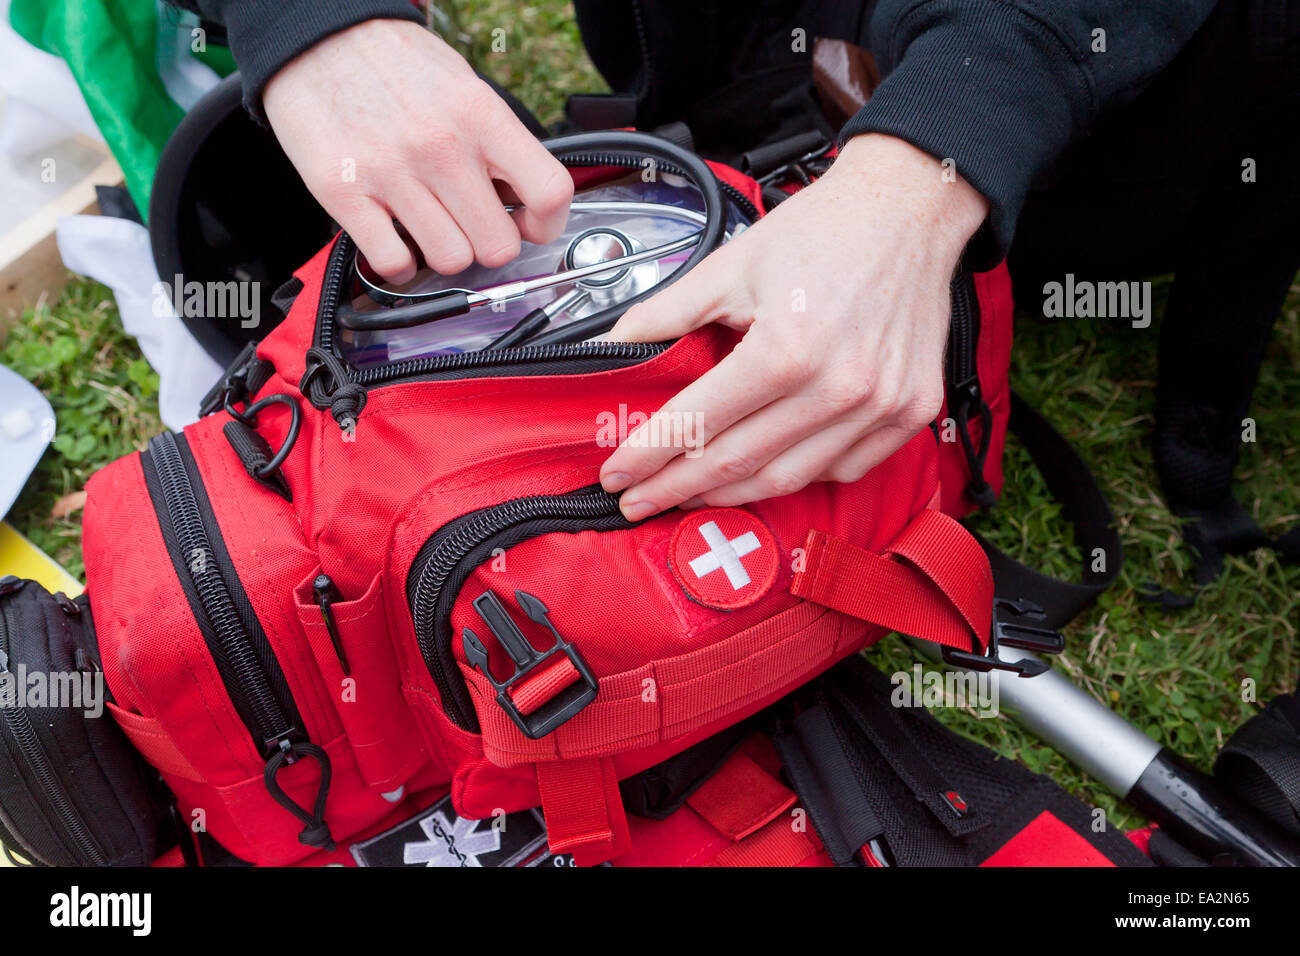 EMT personnel preparing first aid kit - USA - Stock Image